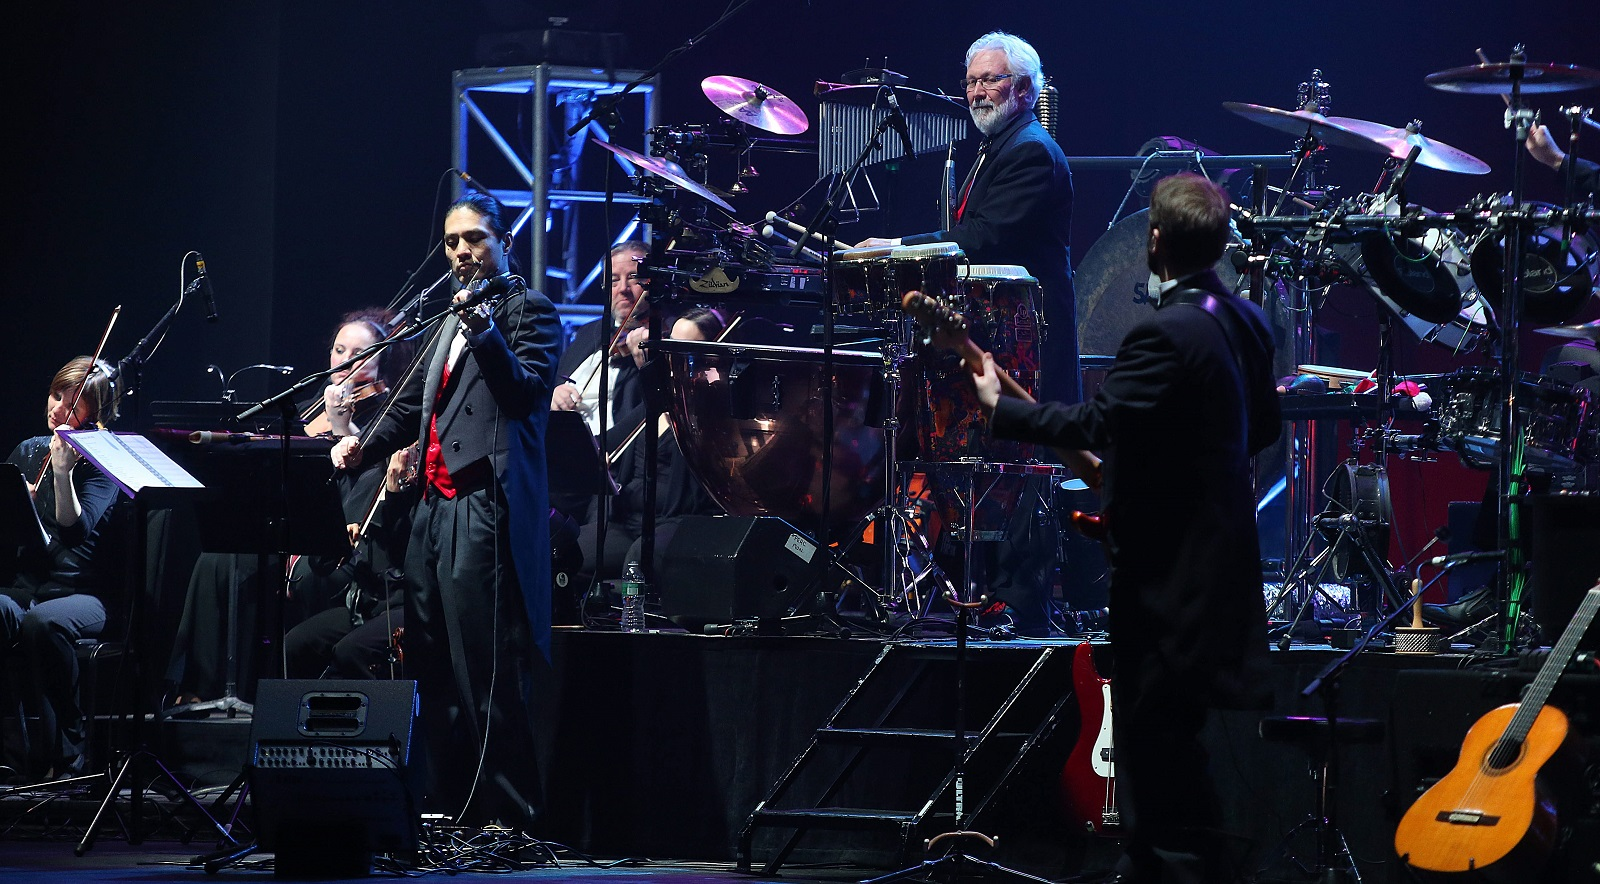 Mannheim Steamroller visits Buffalo each year. Here's an image from its 2013 show at Shea's Performing Arts Center. (Robert Kirkham/Buffalo News file photo)